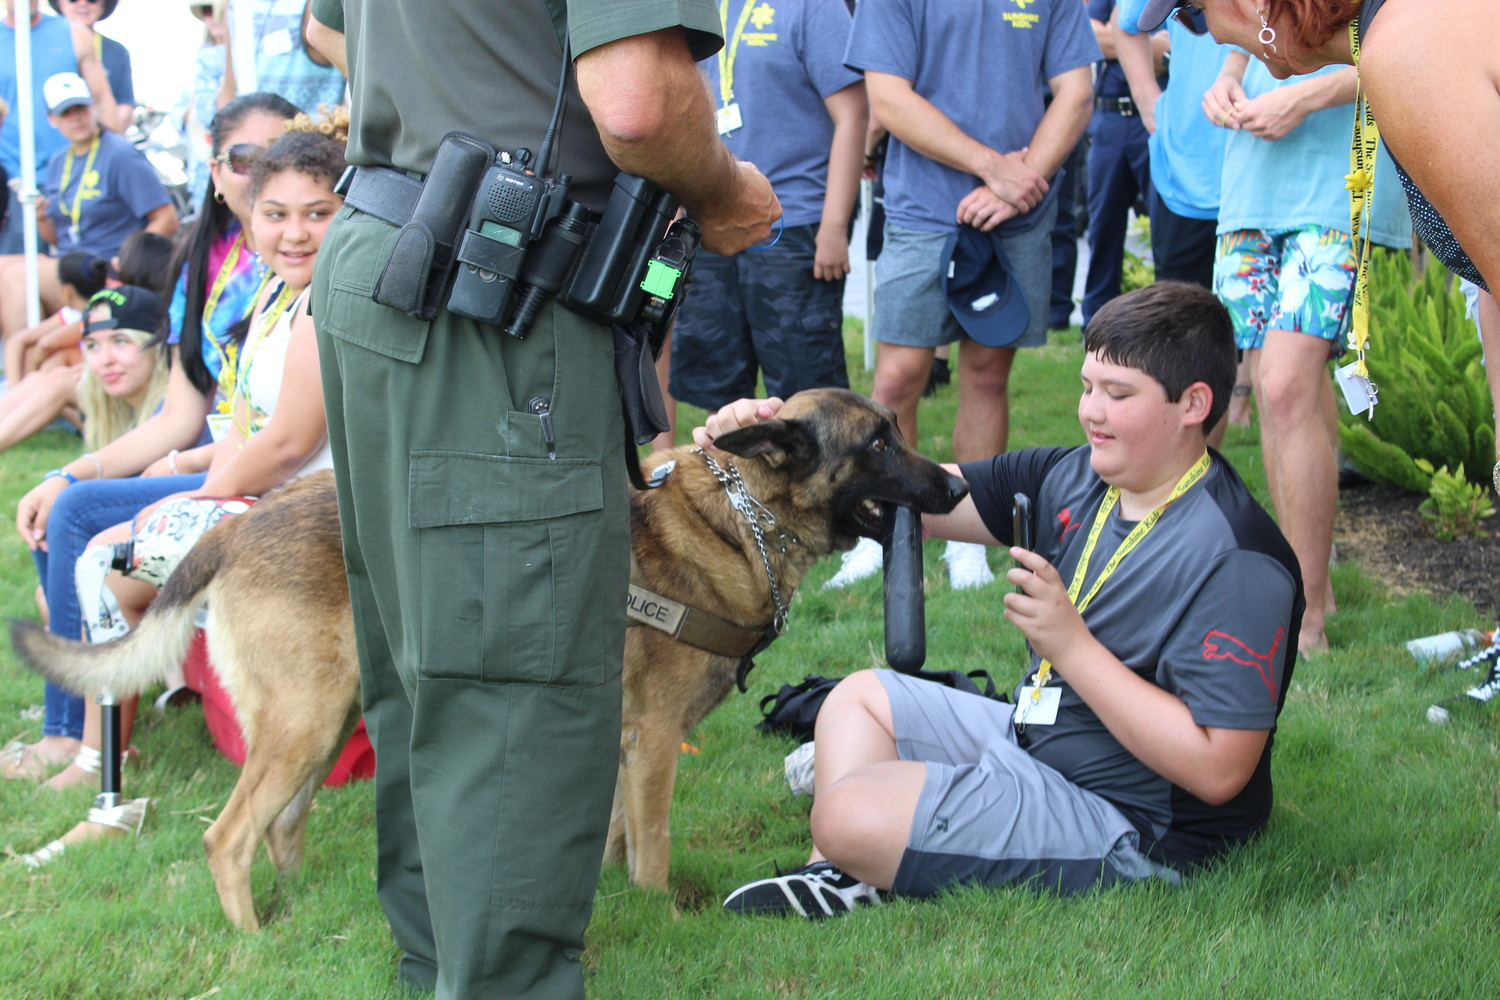 Sunshine Kid camper Connor Warfield, 14, of Katy, gives Travis County Sheriff's Office K-9 Bobek a well-deserved pat after demonstrating his abilities with narcotic searches and criminal takedowns.